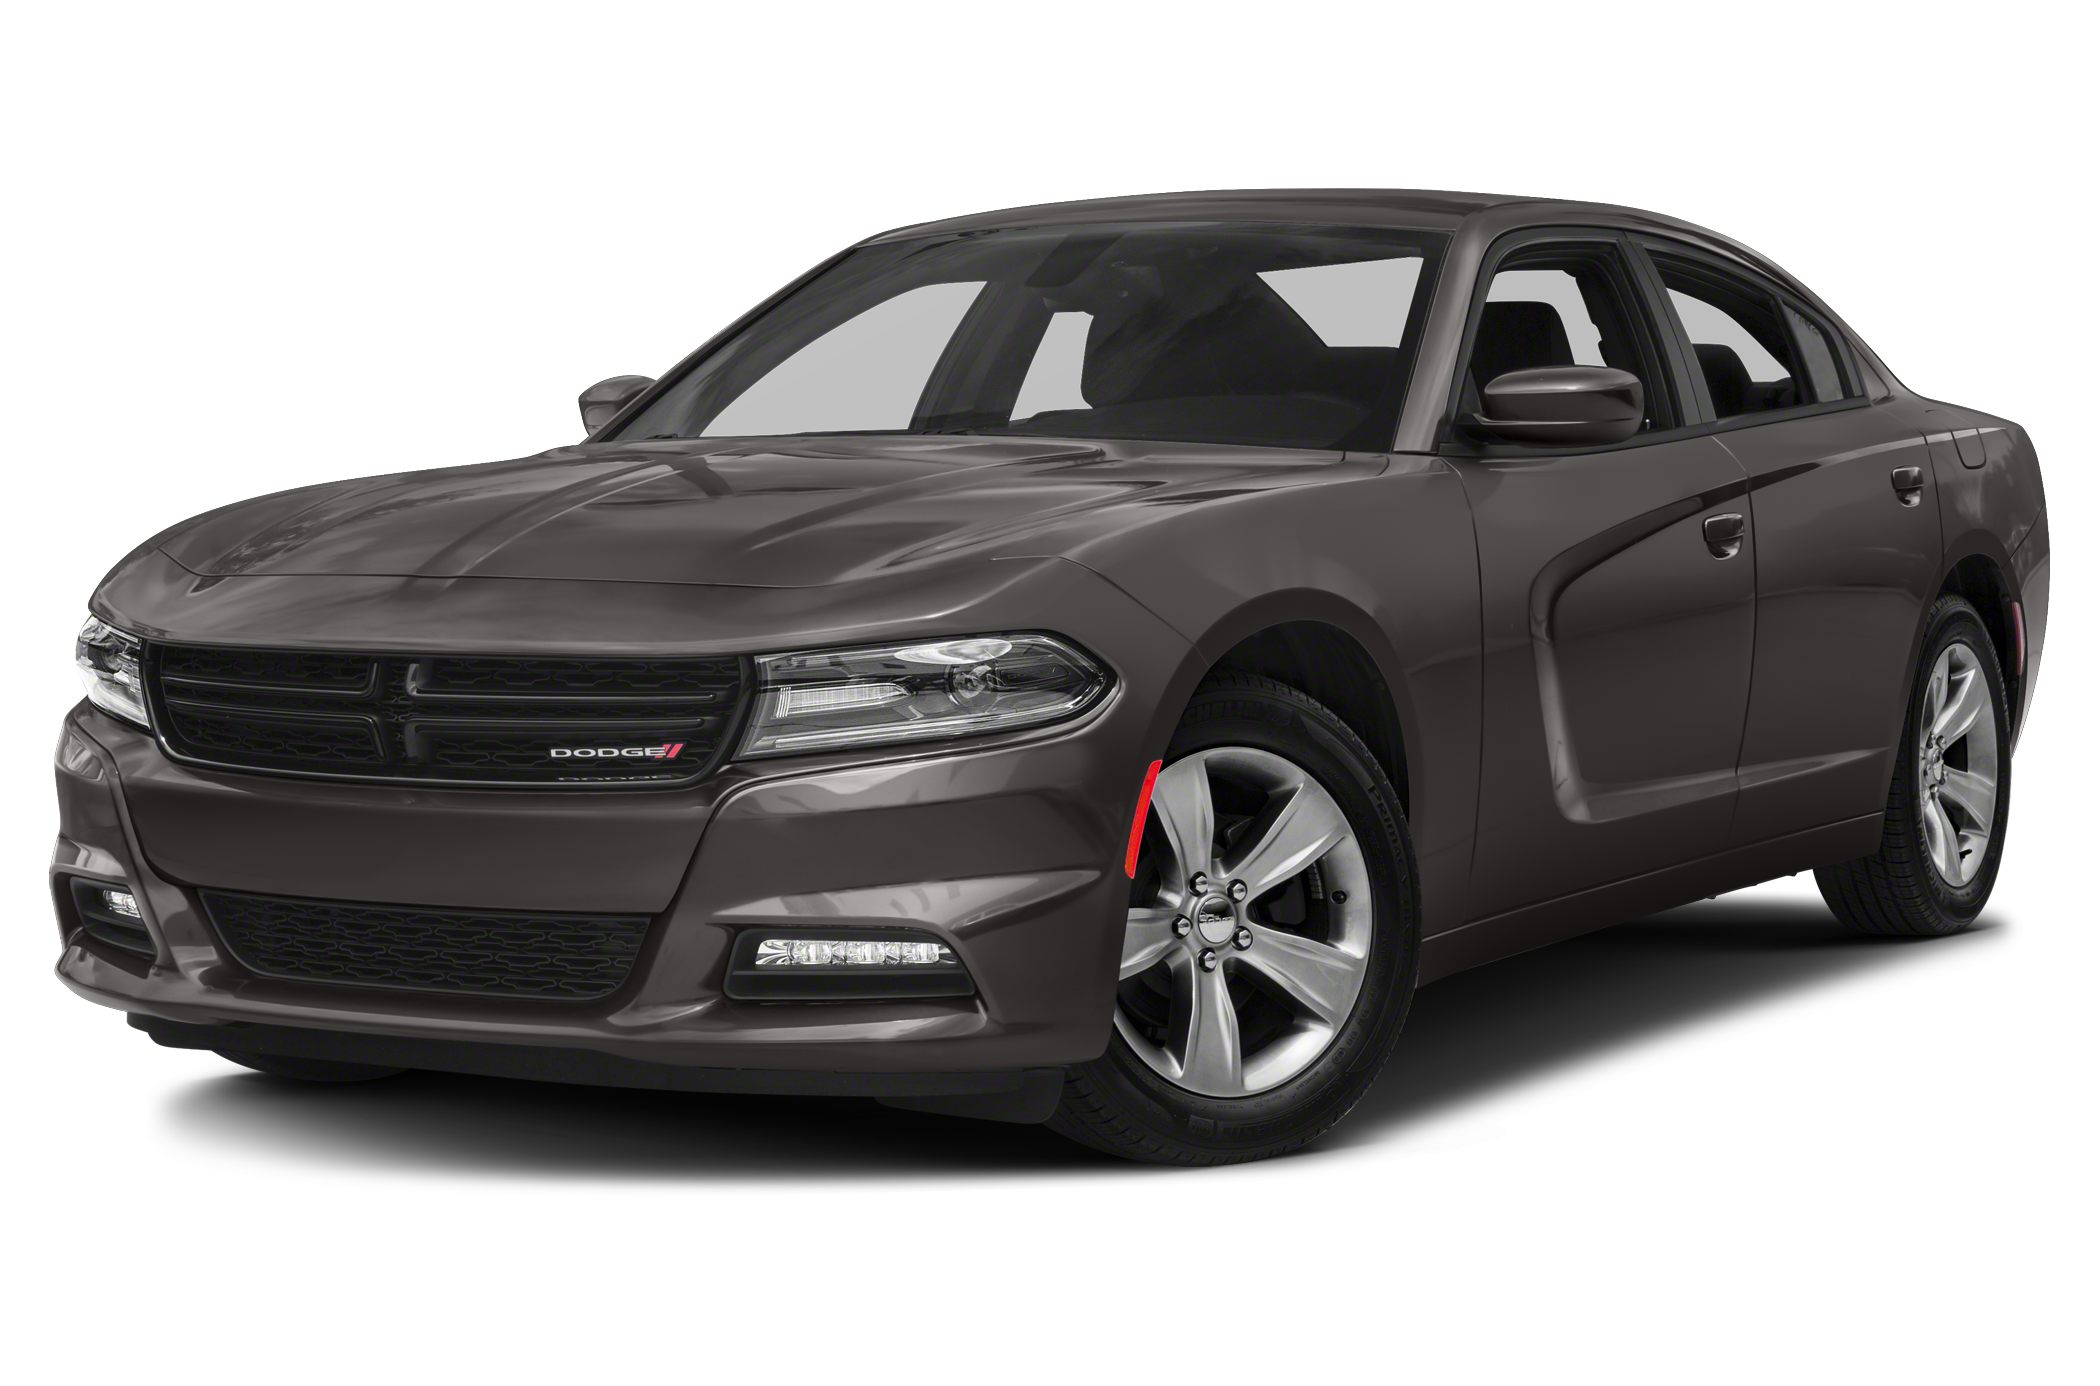 2016 Dodge Charger SXT Price includes 500 - Southwest 2016 Bonus Cash SWCGA 1000 - 2016MY USA